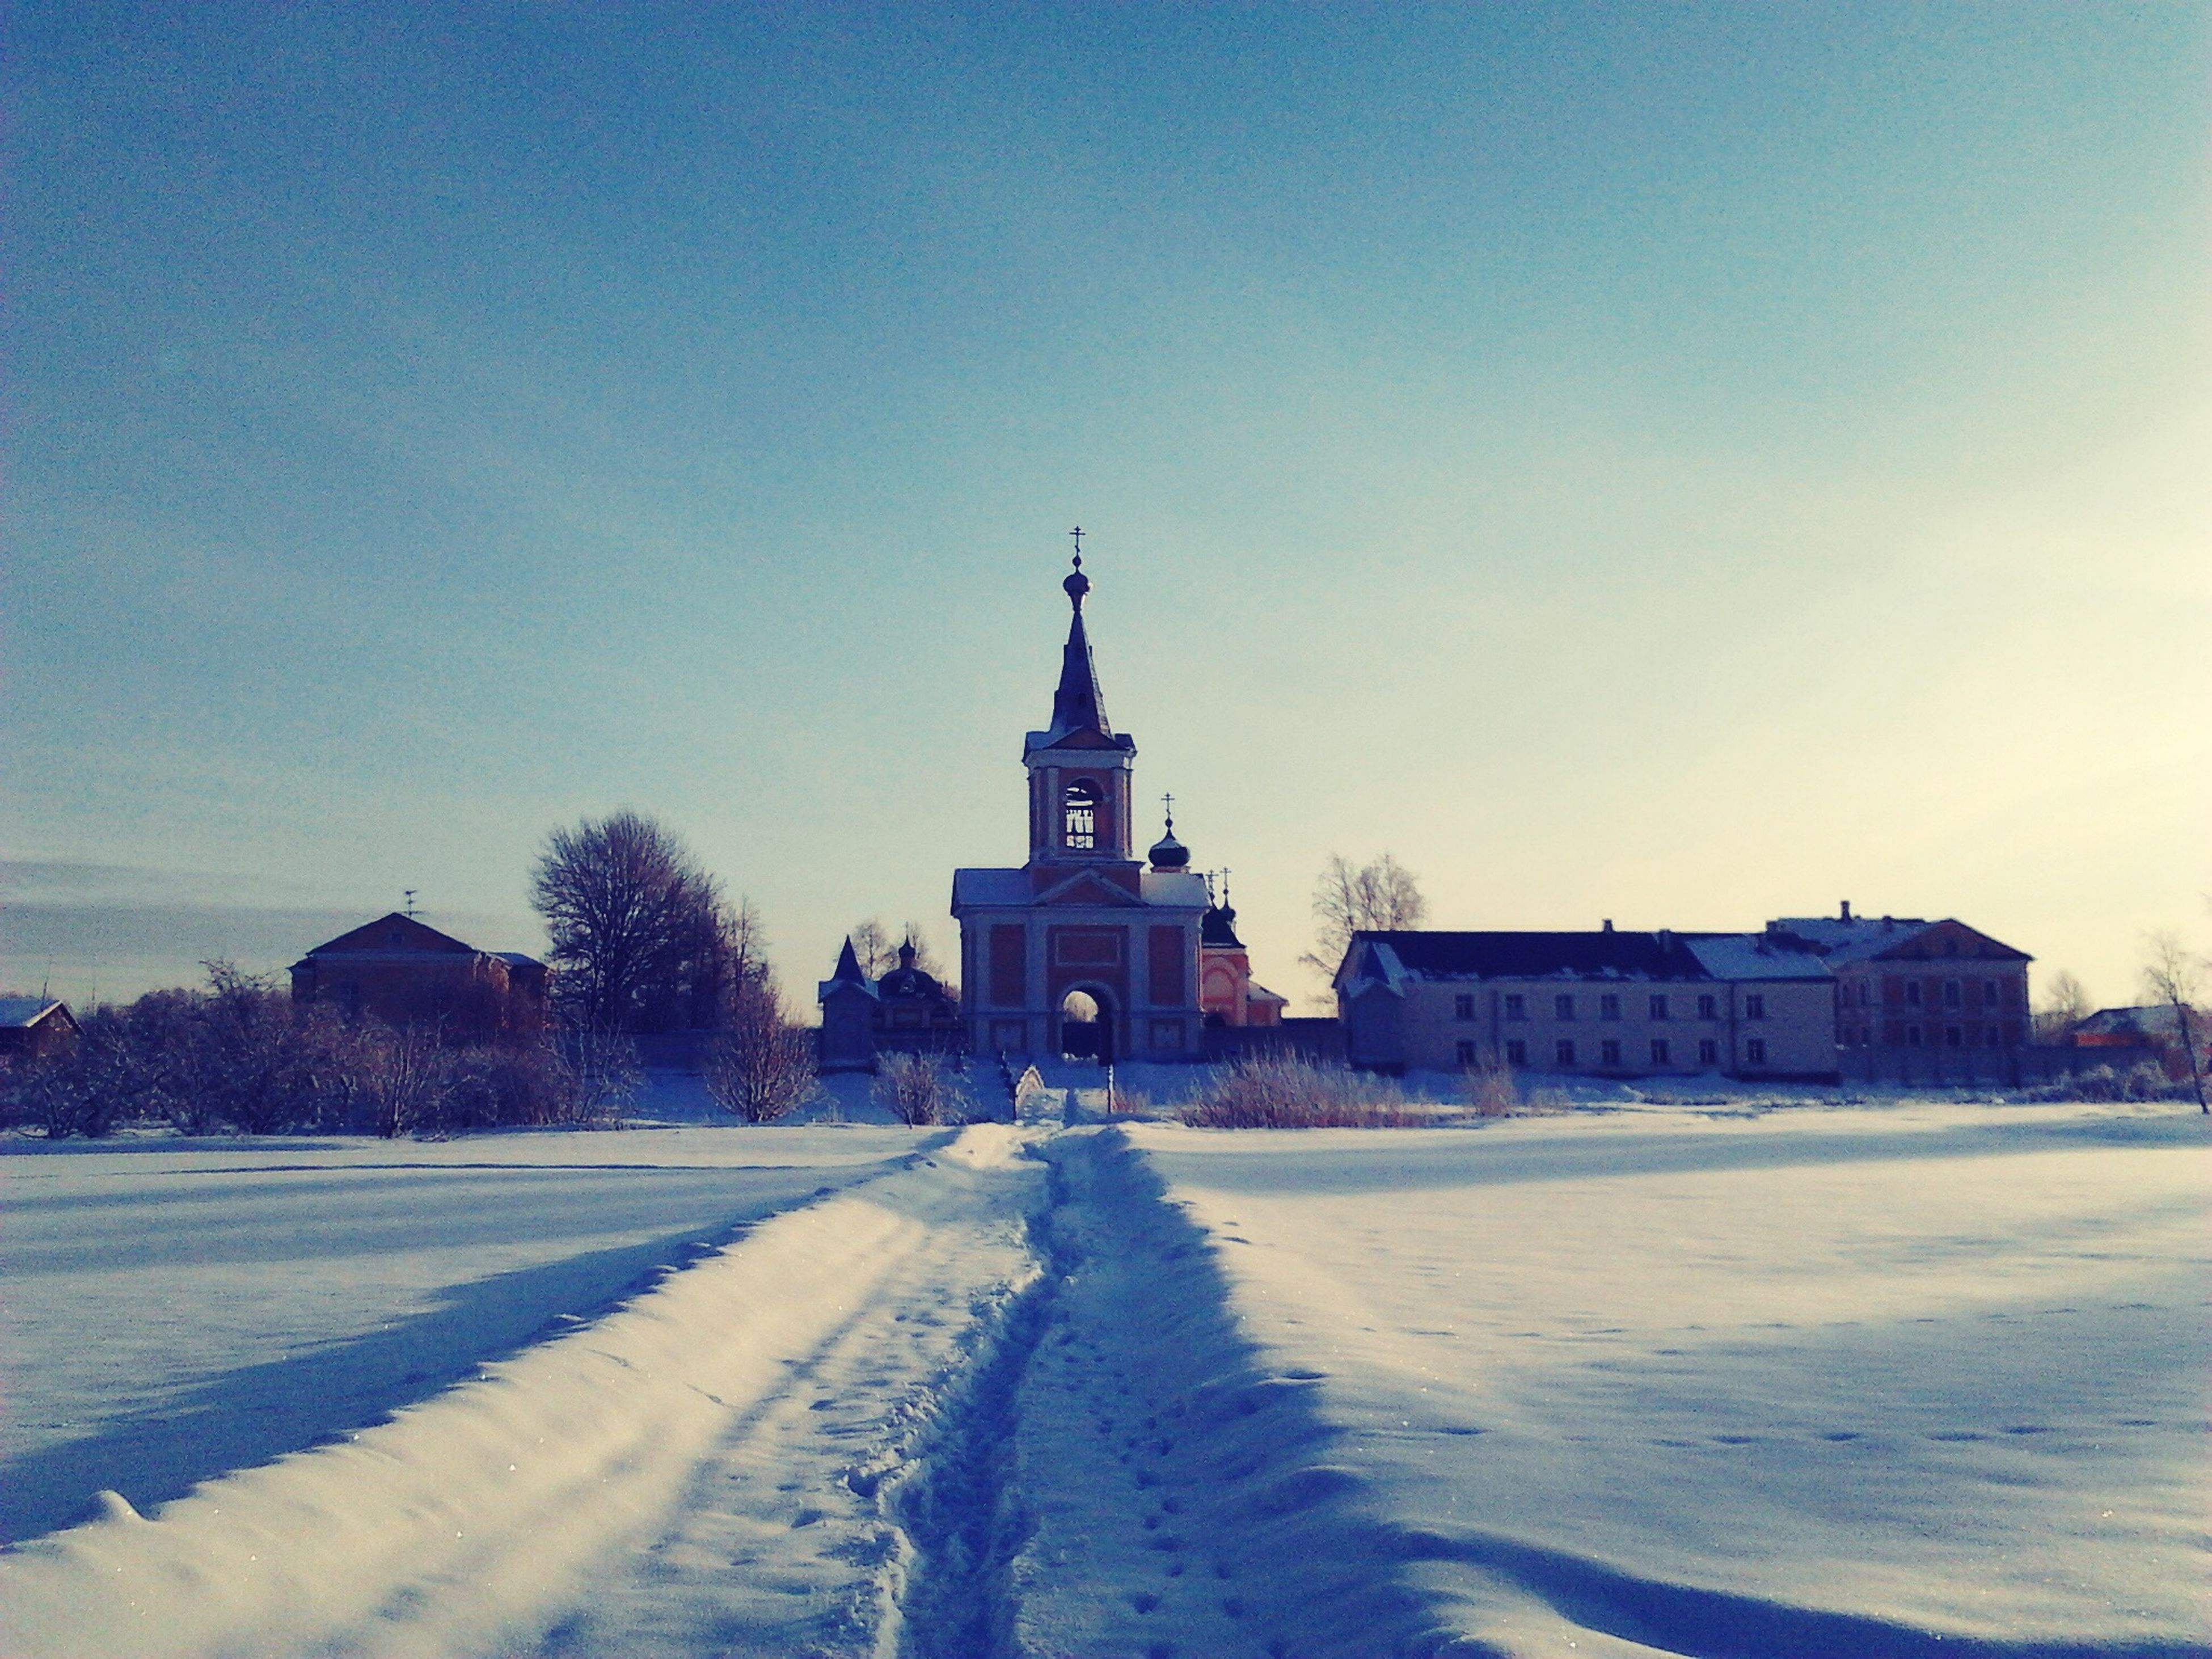 building exterior, architecture, built structure, snow, winter, cold temperature, clear sky, house, blue, sky, copy space, season, white color, nature, landscape, outdoors, sunlight, road, day, street